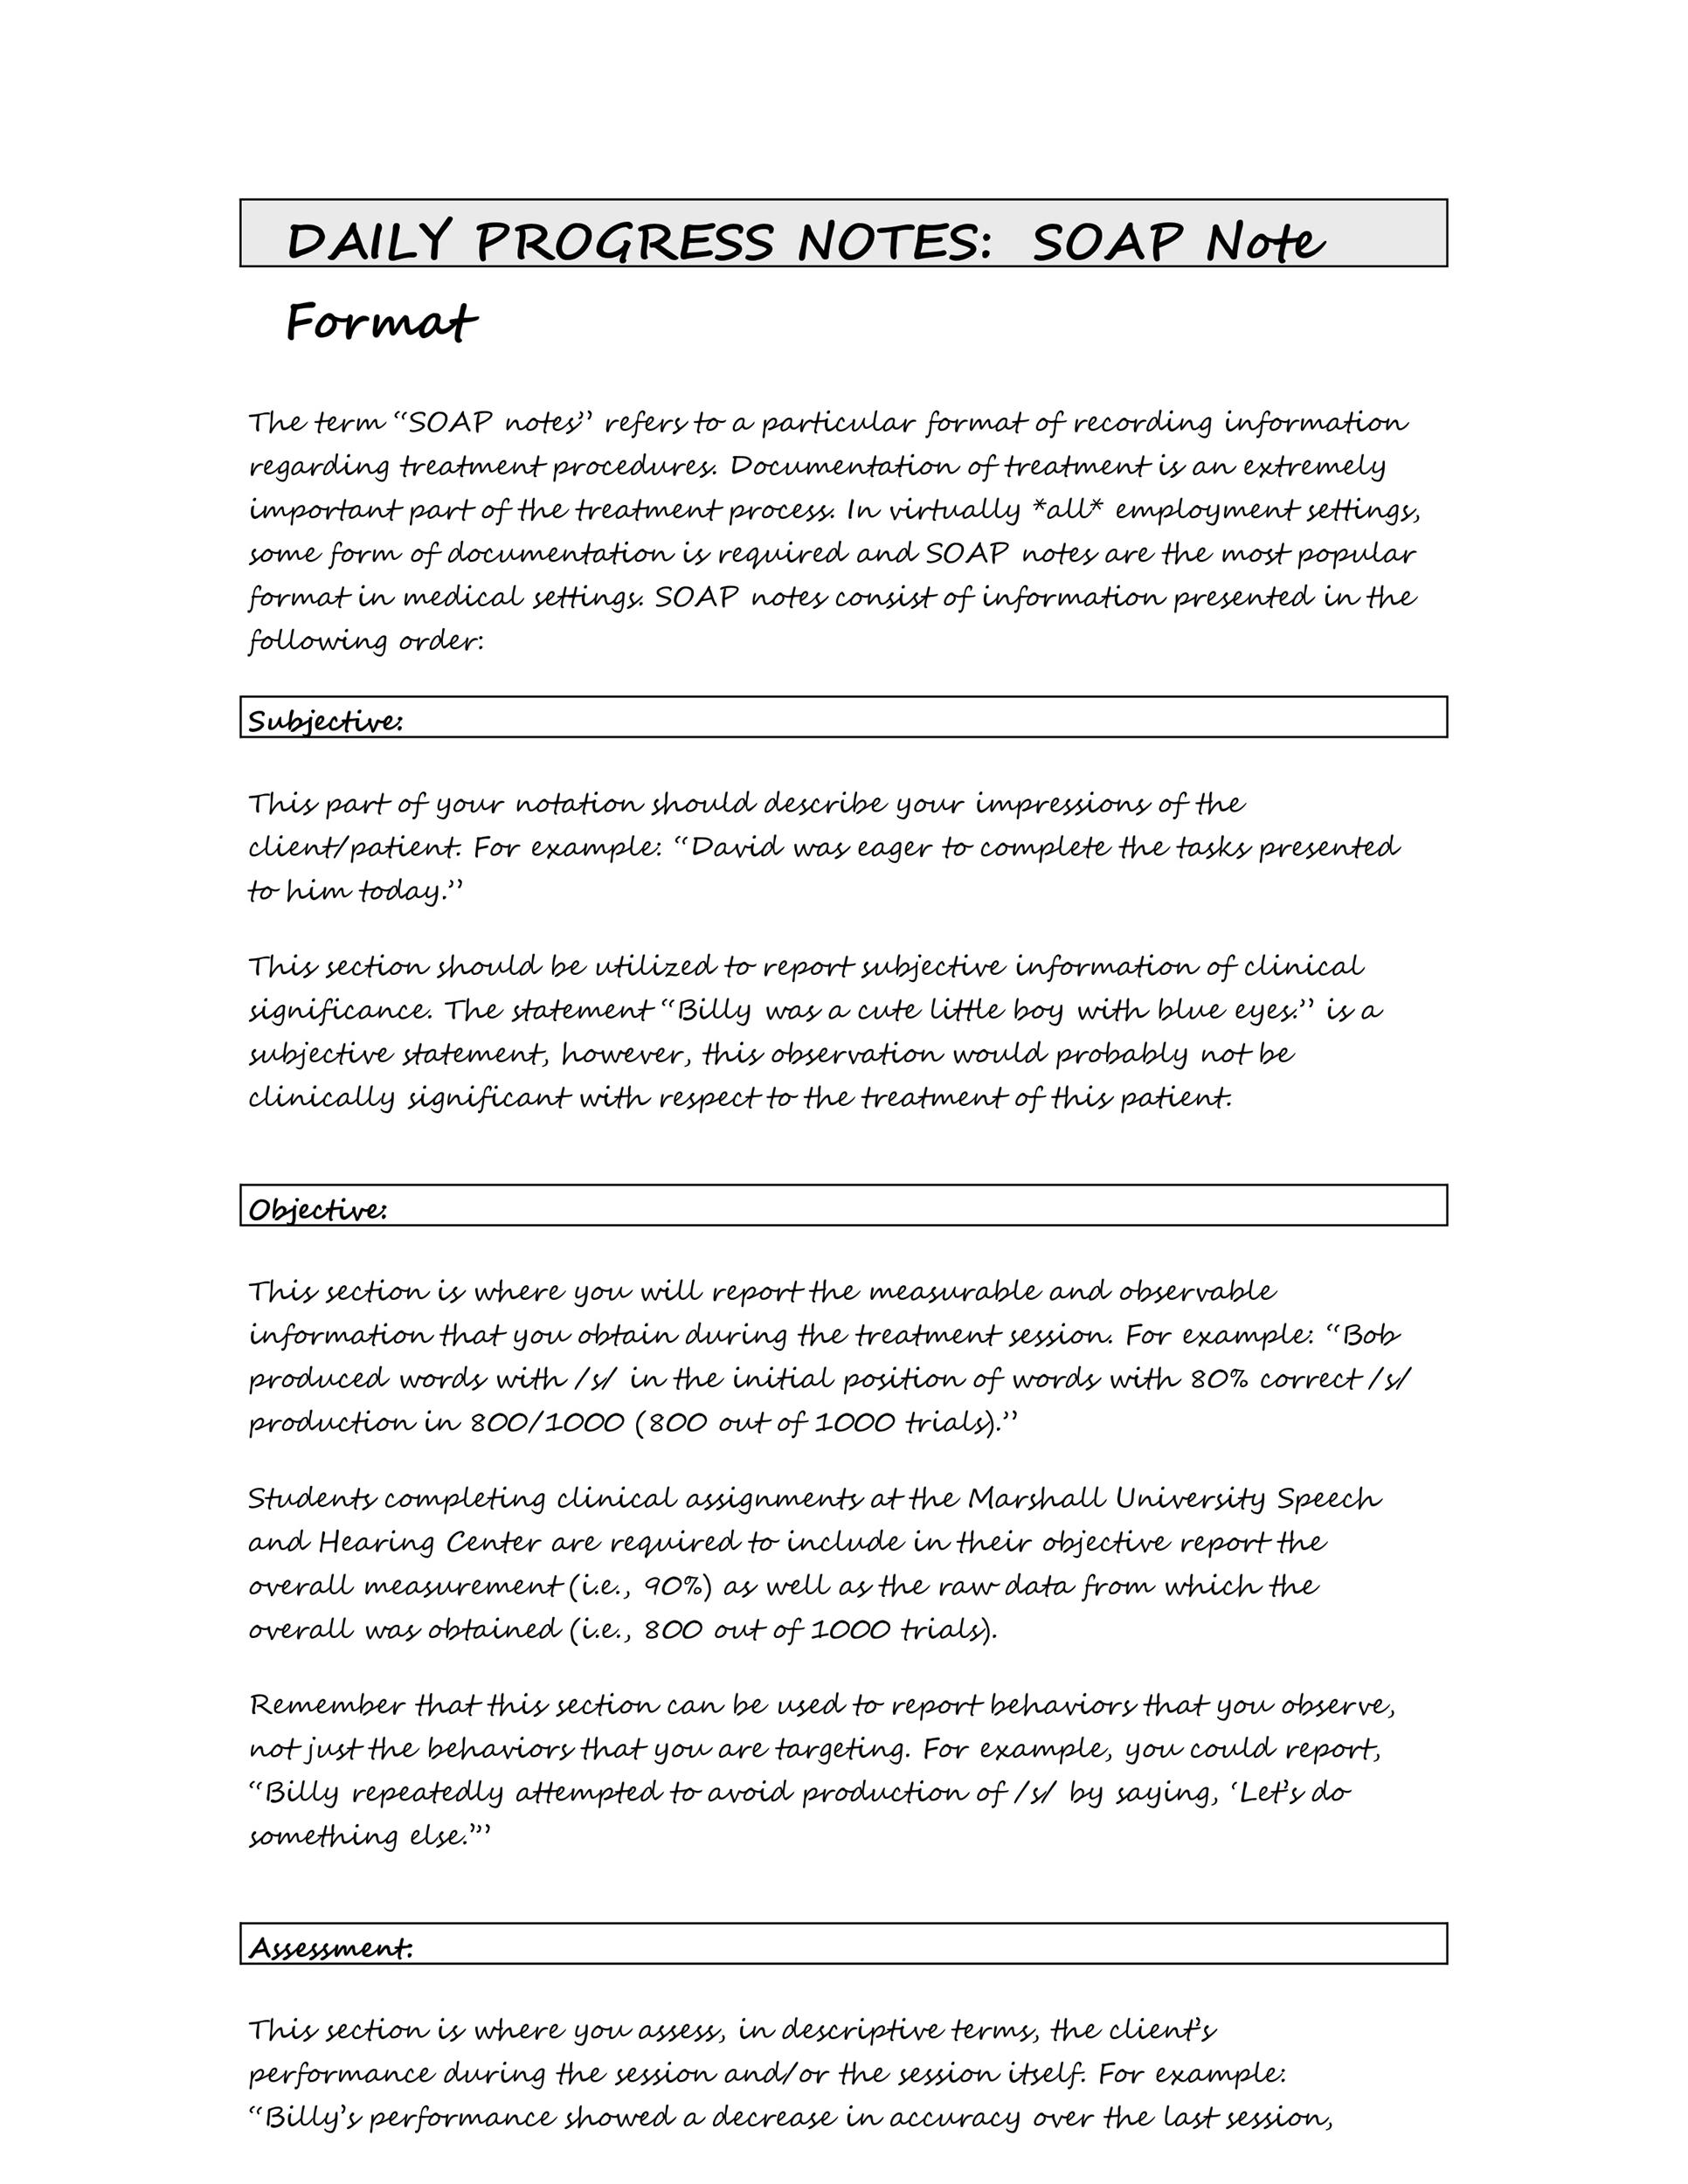 Free Soap Note Template 11